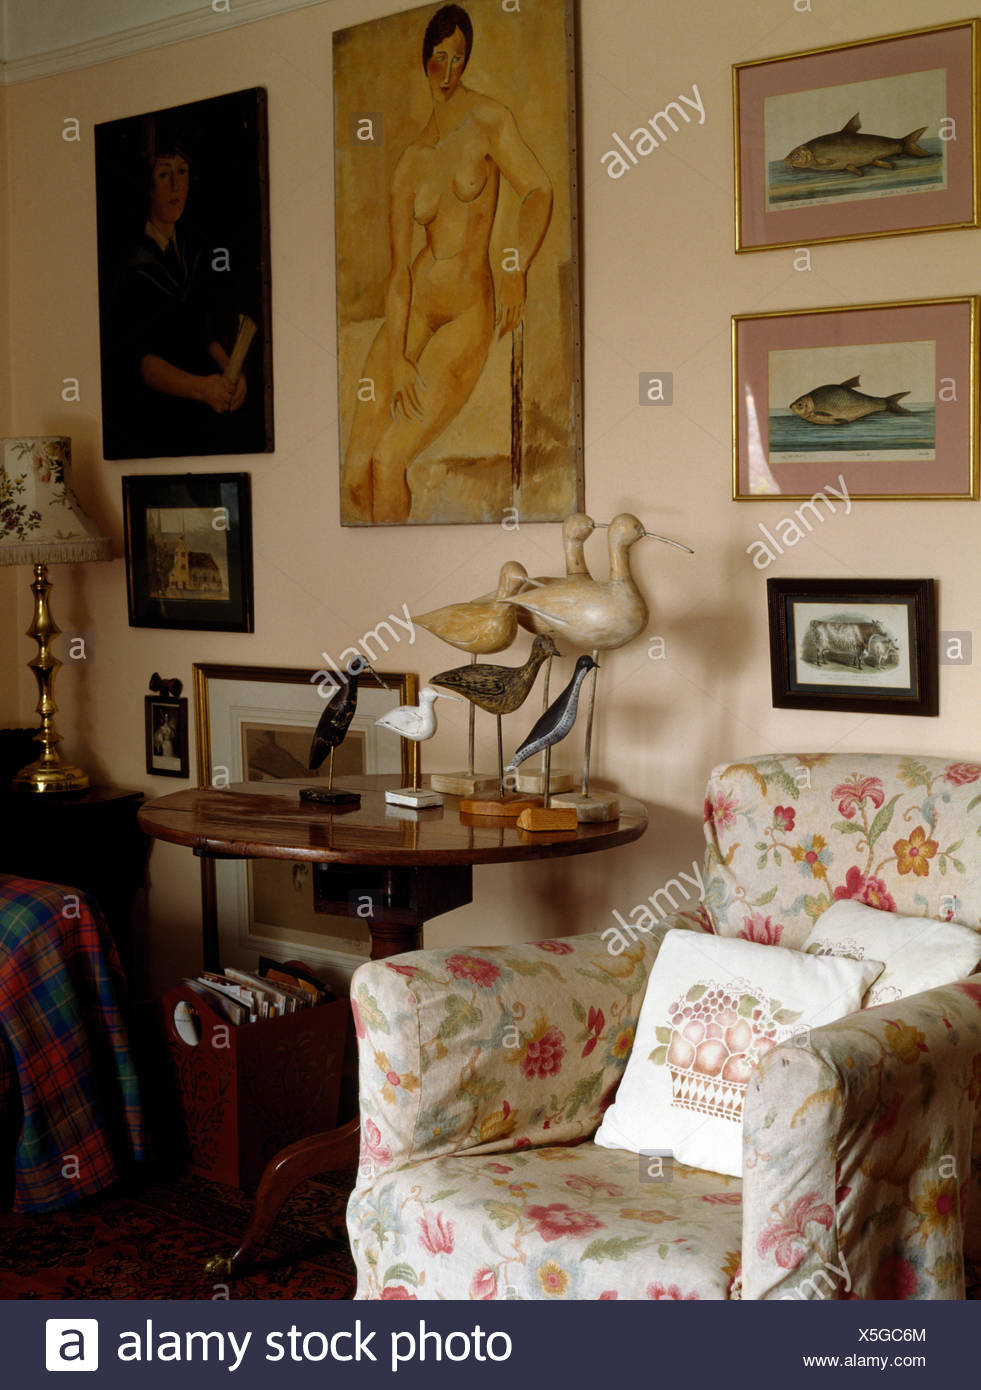 Floral Loose Cover On Armchair Beside Table With Decoy Ducks In Old  Fashioned Living Room